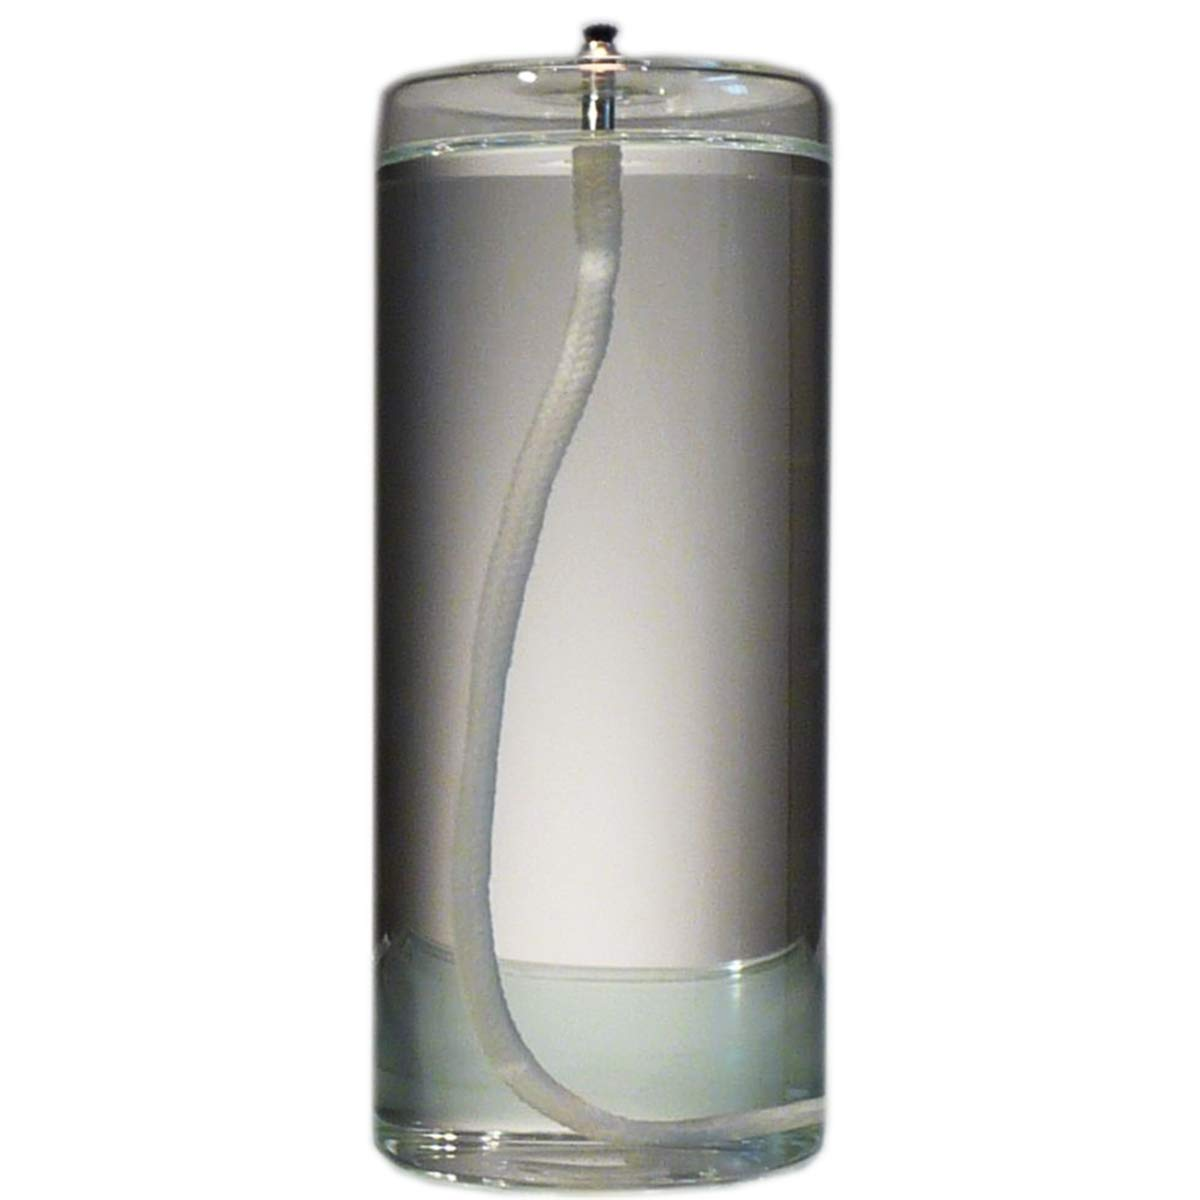 6-Inch Refillable Glass Pillar Candle - Memory, Unity and Window Candle without the Wax Mess - Use Alone, in a Candle Holder or Lantern - For use in the Interior of Your Home by Firefly